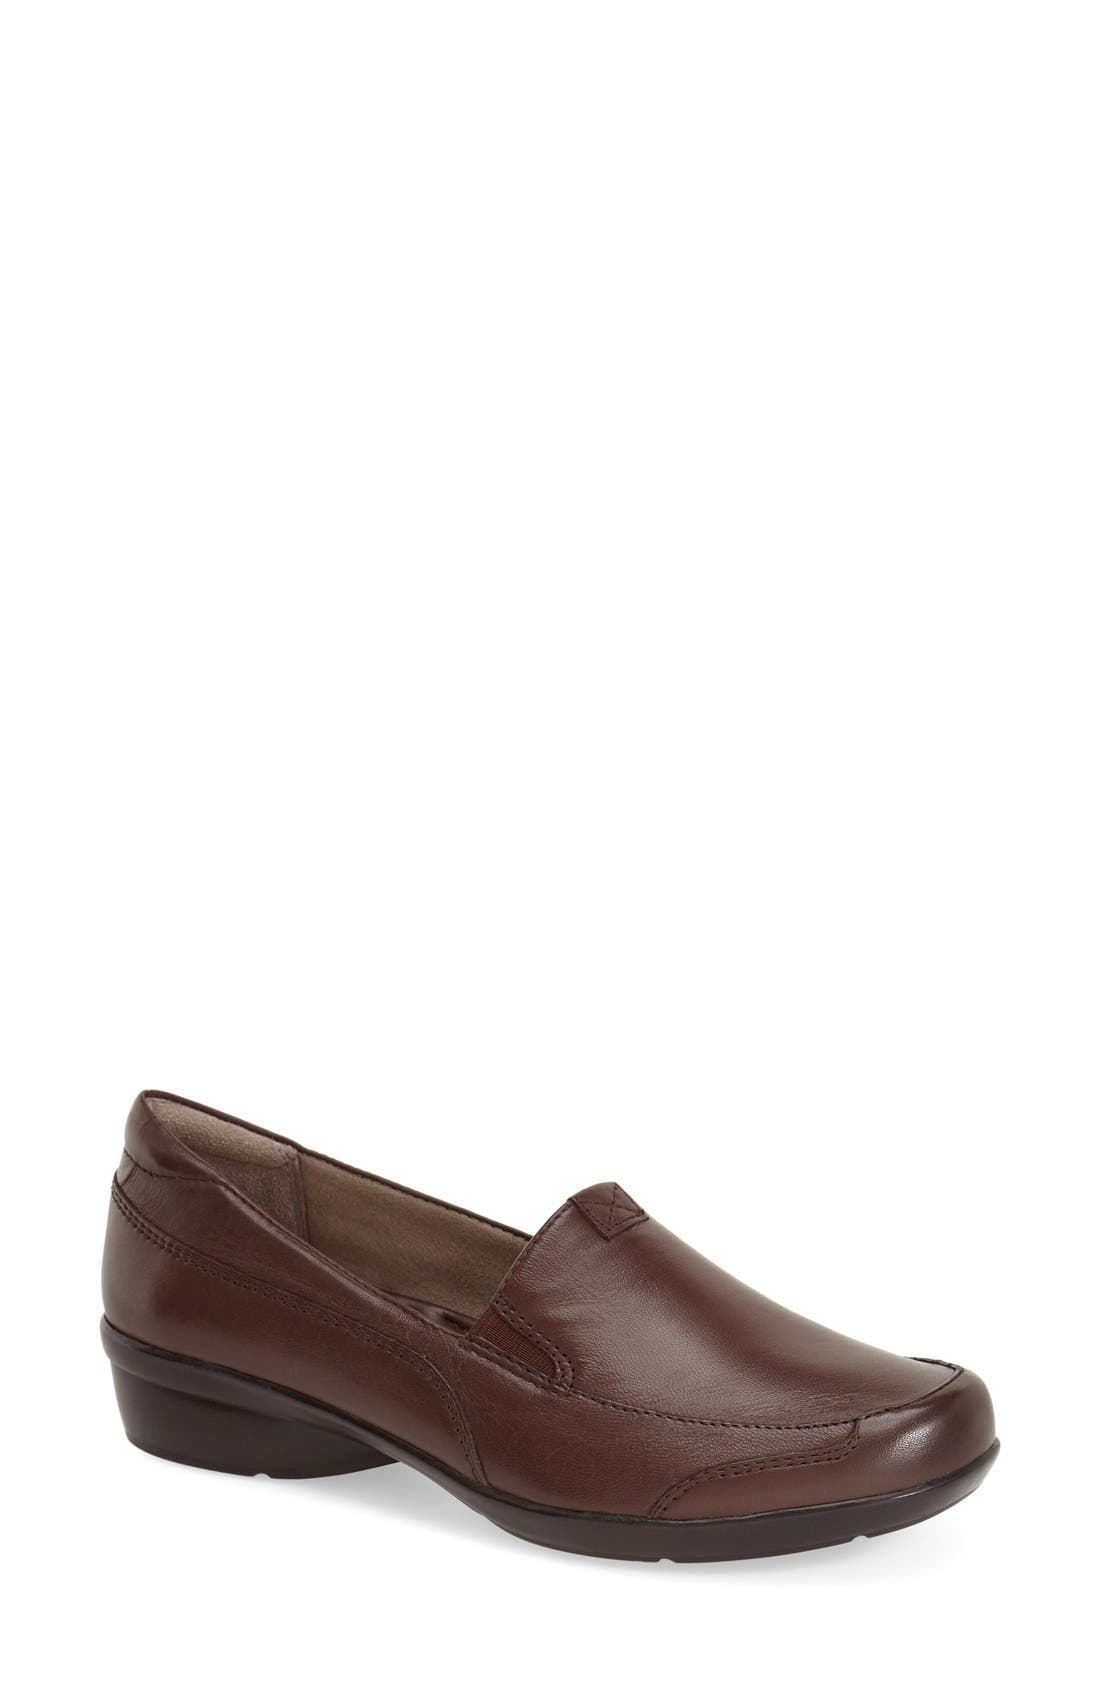 'Channing' Loafer,                         Main,                         color, Bridal Brown